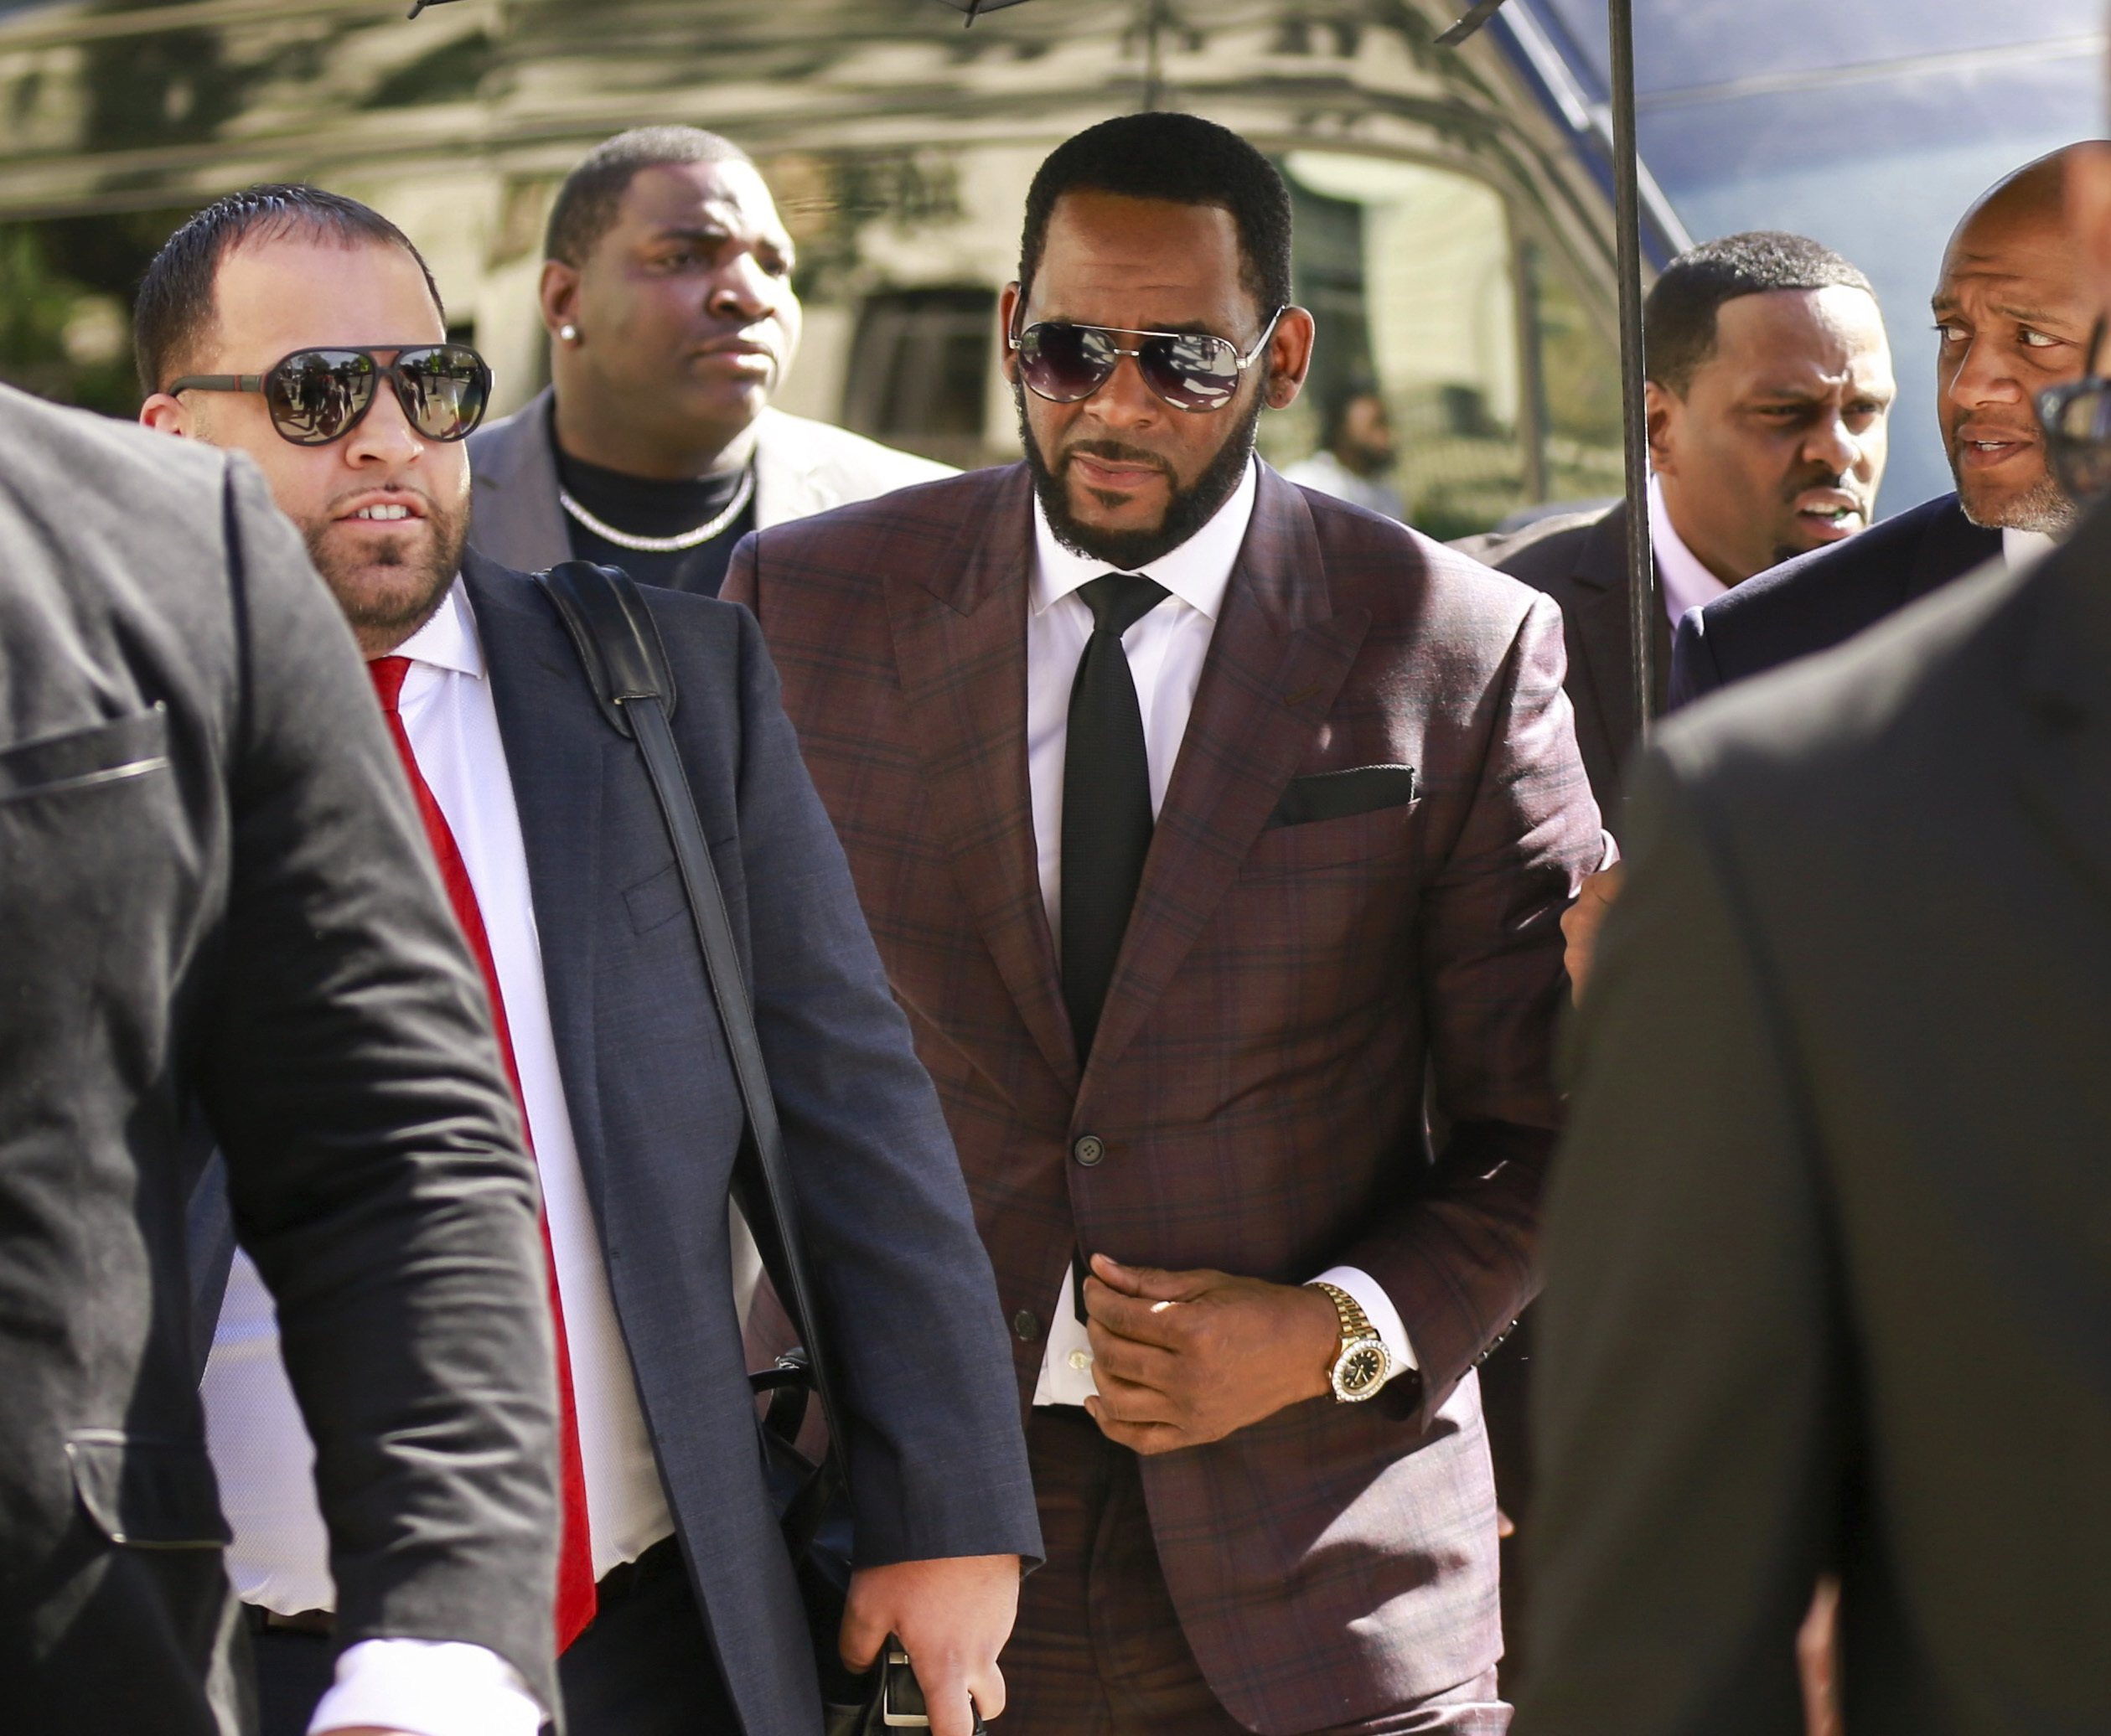 In this June 26, 2019, file photo, R&B singer R. Kelly, center, arrives at the Leighton Criminal Court building for an arraignment on sex-related felonies in Chicago.